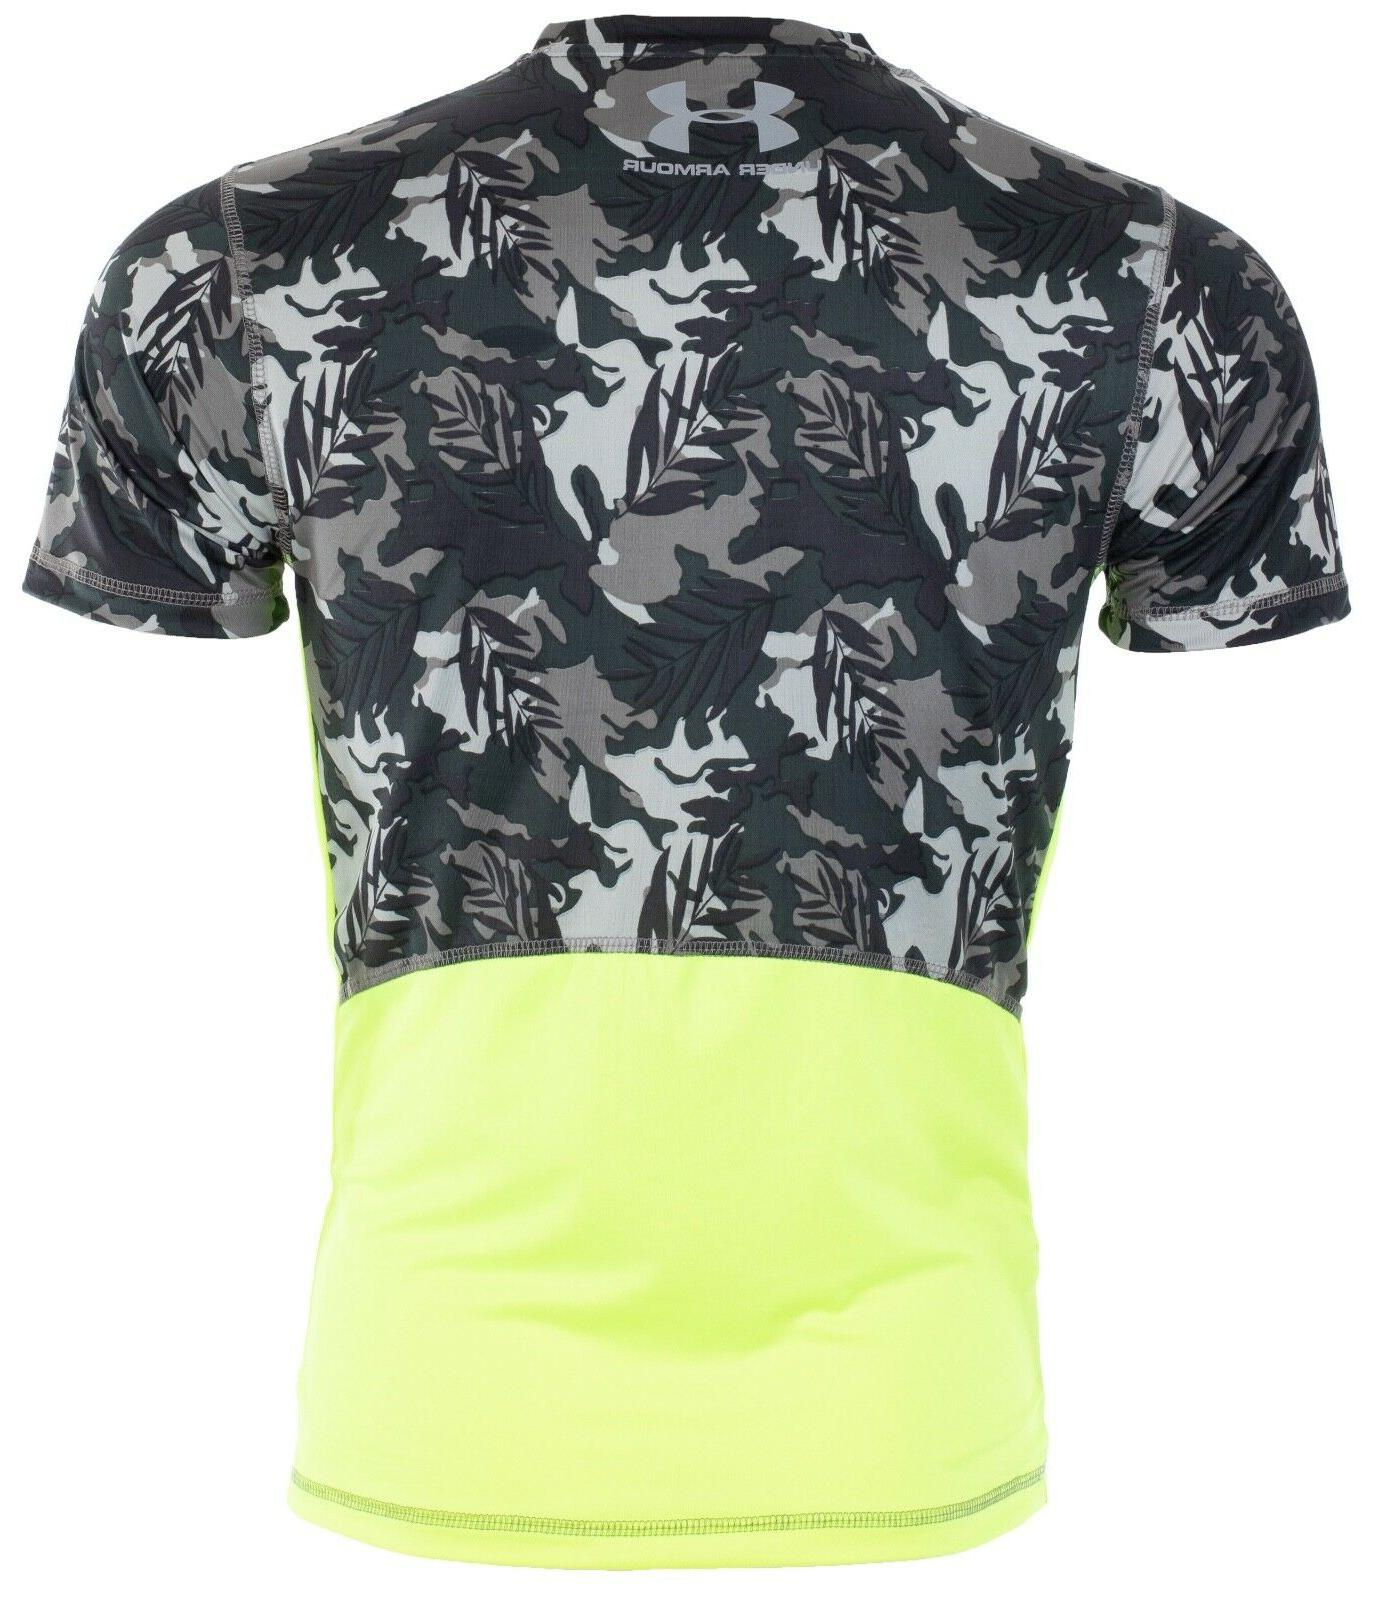 UNDER ARMOUR T-Shirt Semi Fitted $40